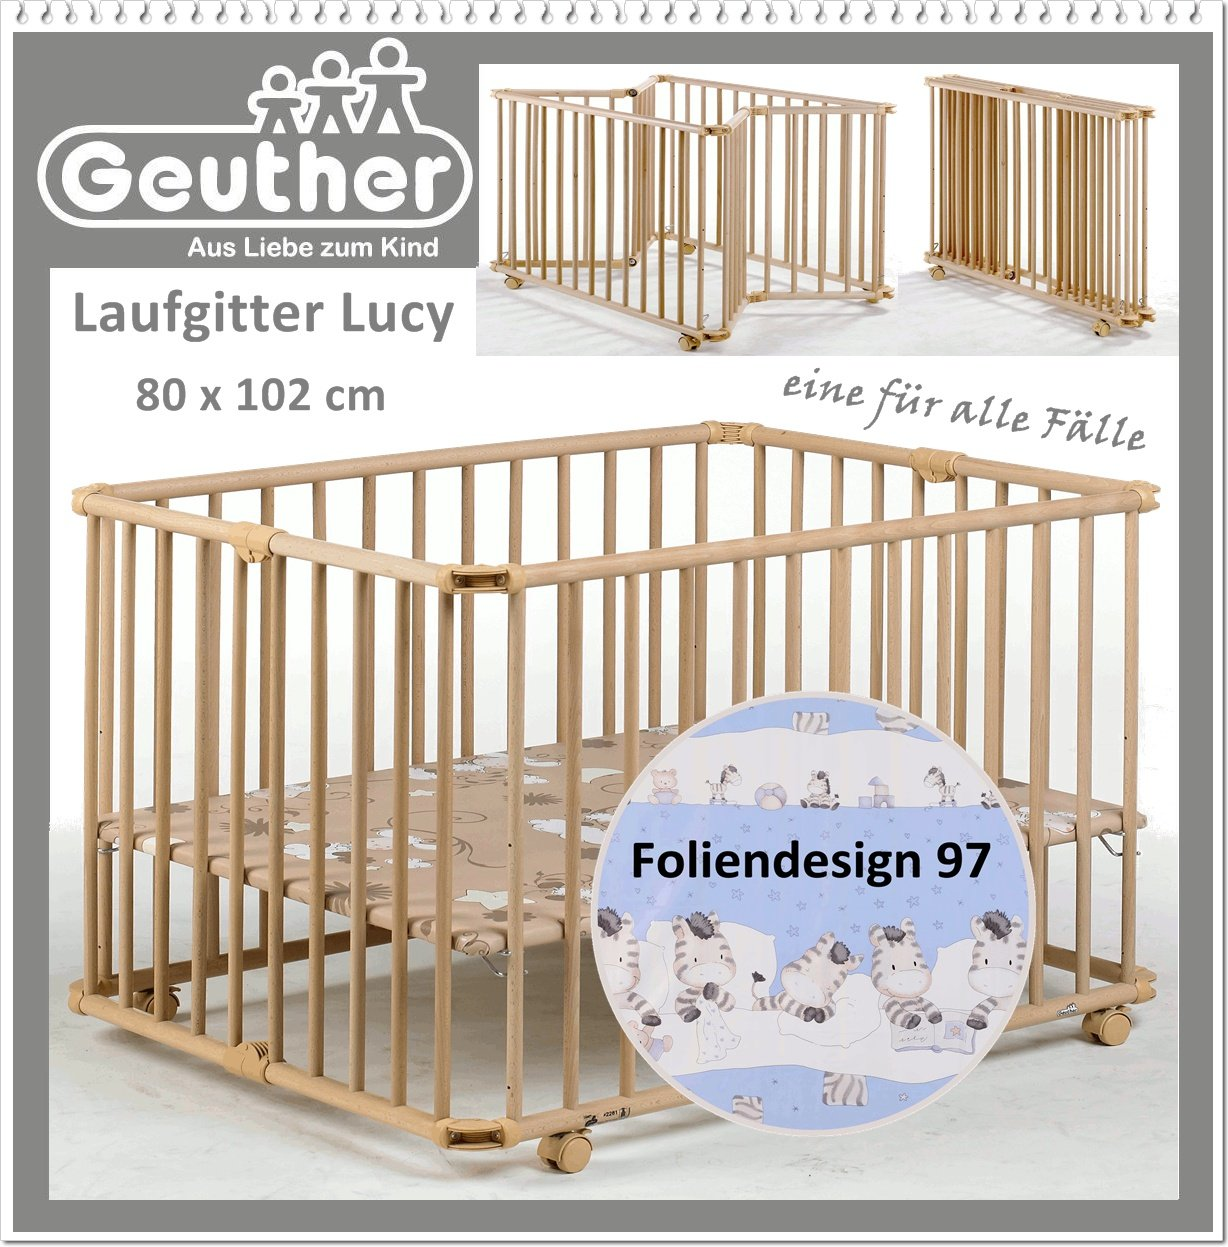 GEUTHER Laufgitter Lucy Laufstall Baby - 800 x 1020 x 735